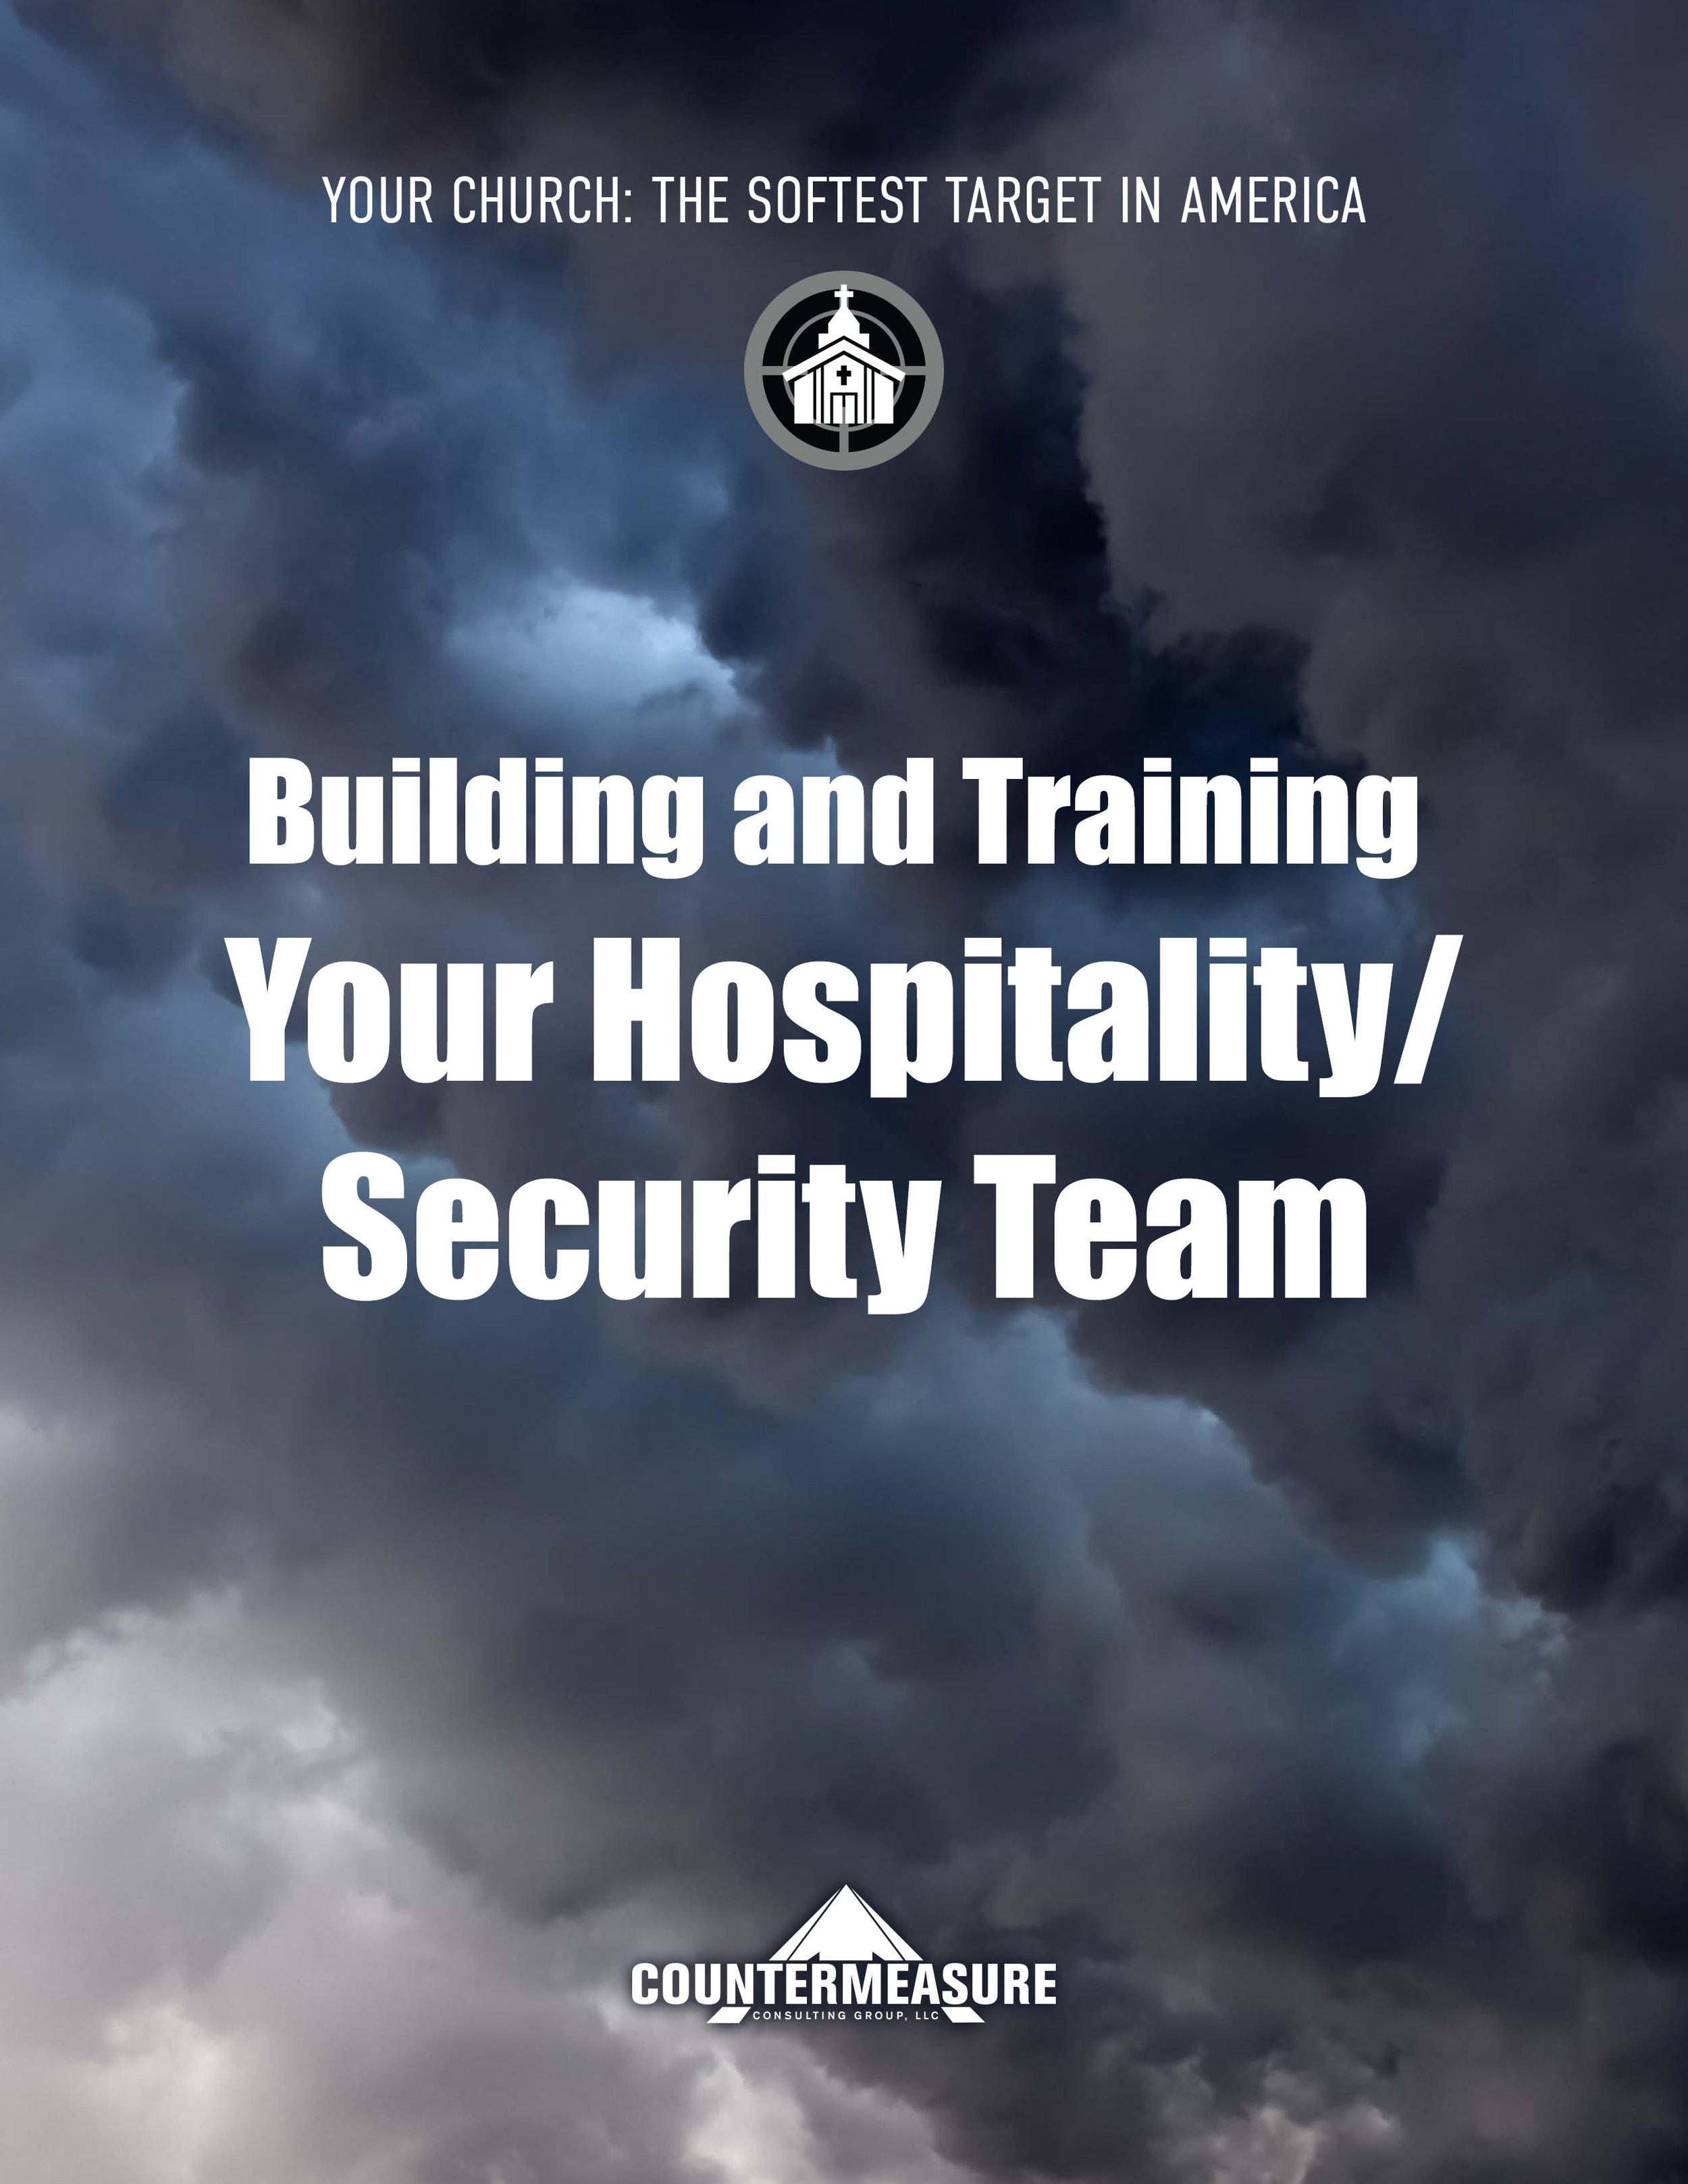 TrainingManual COVER.jpg